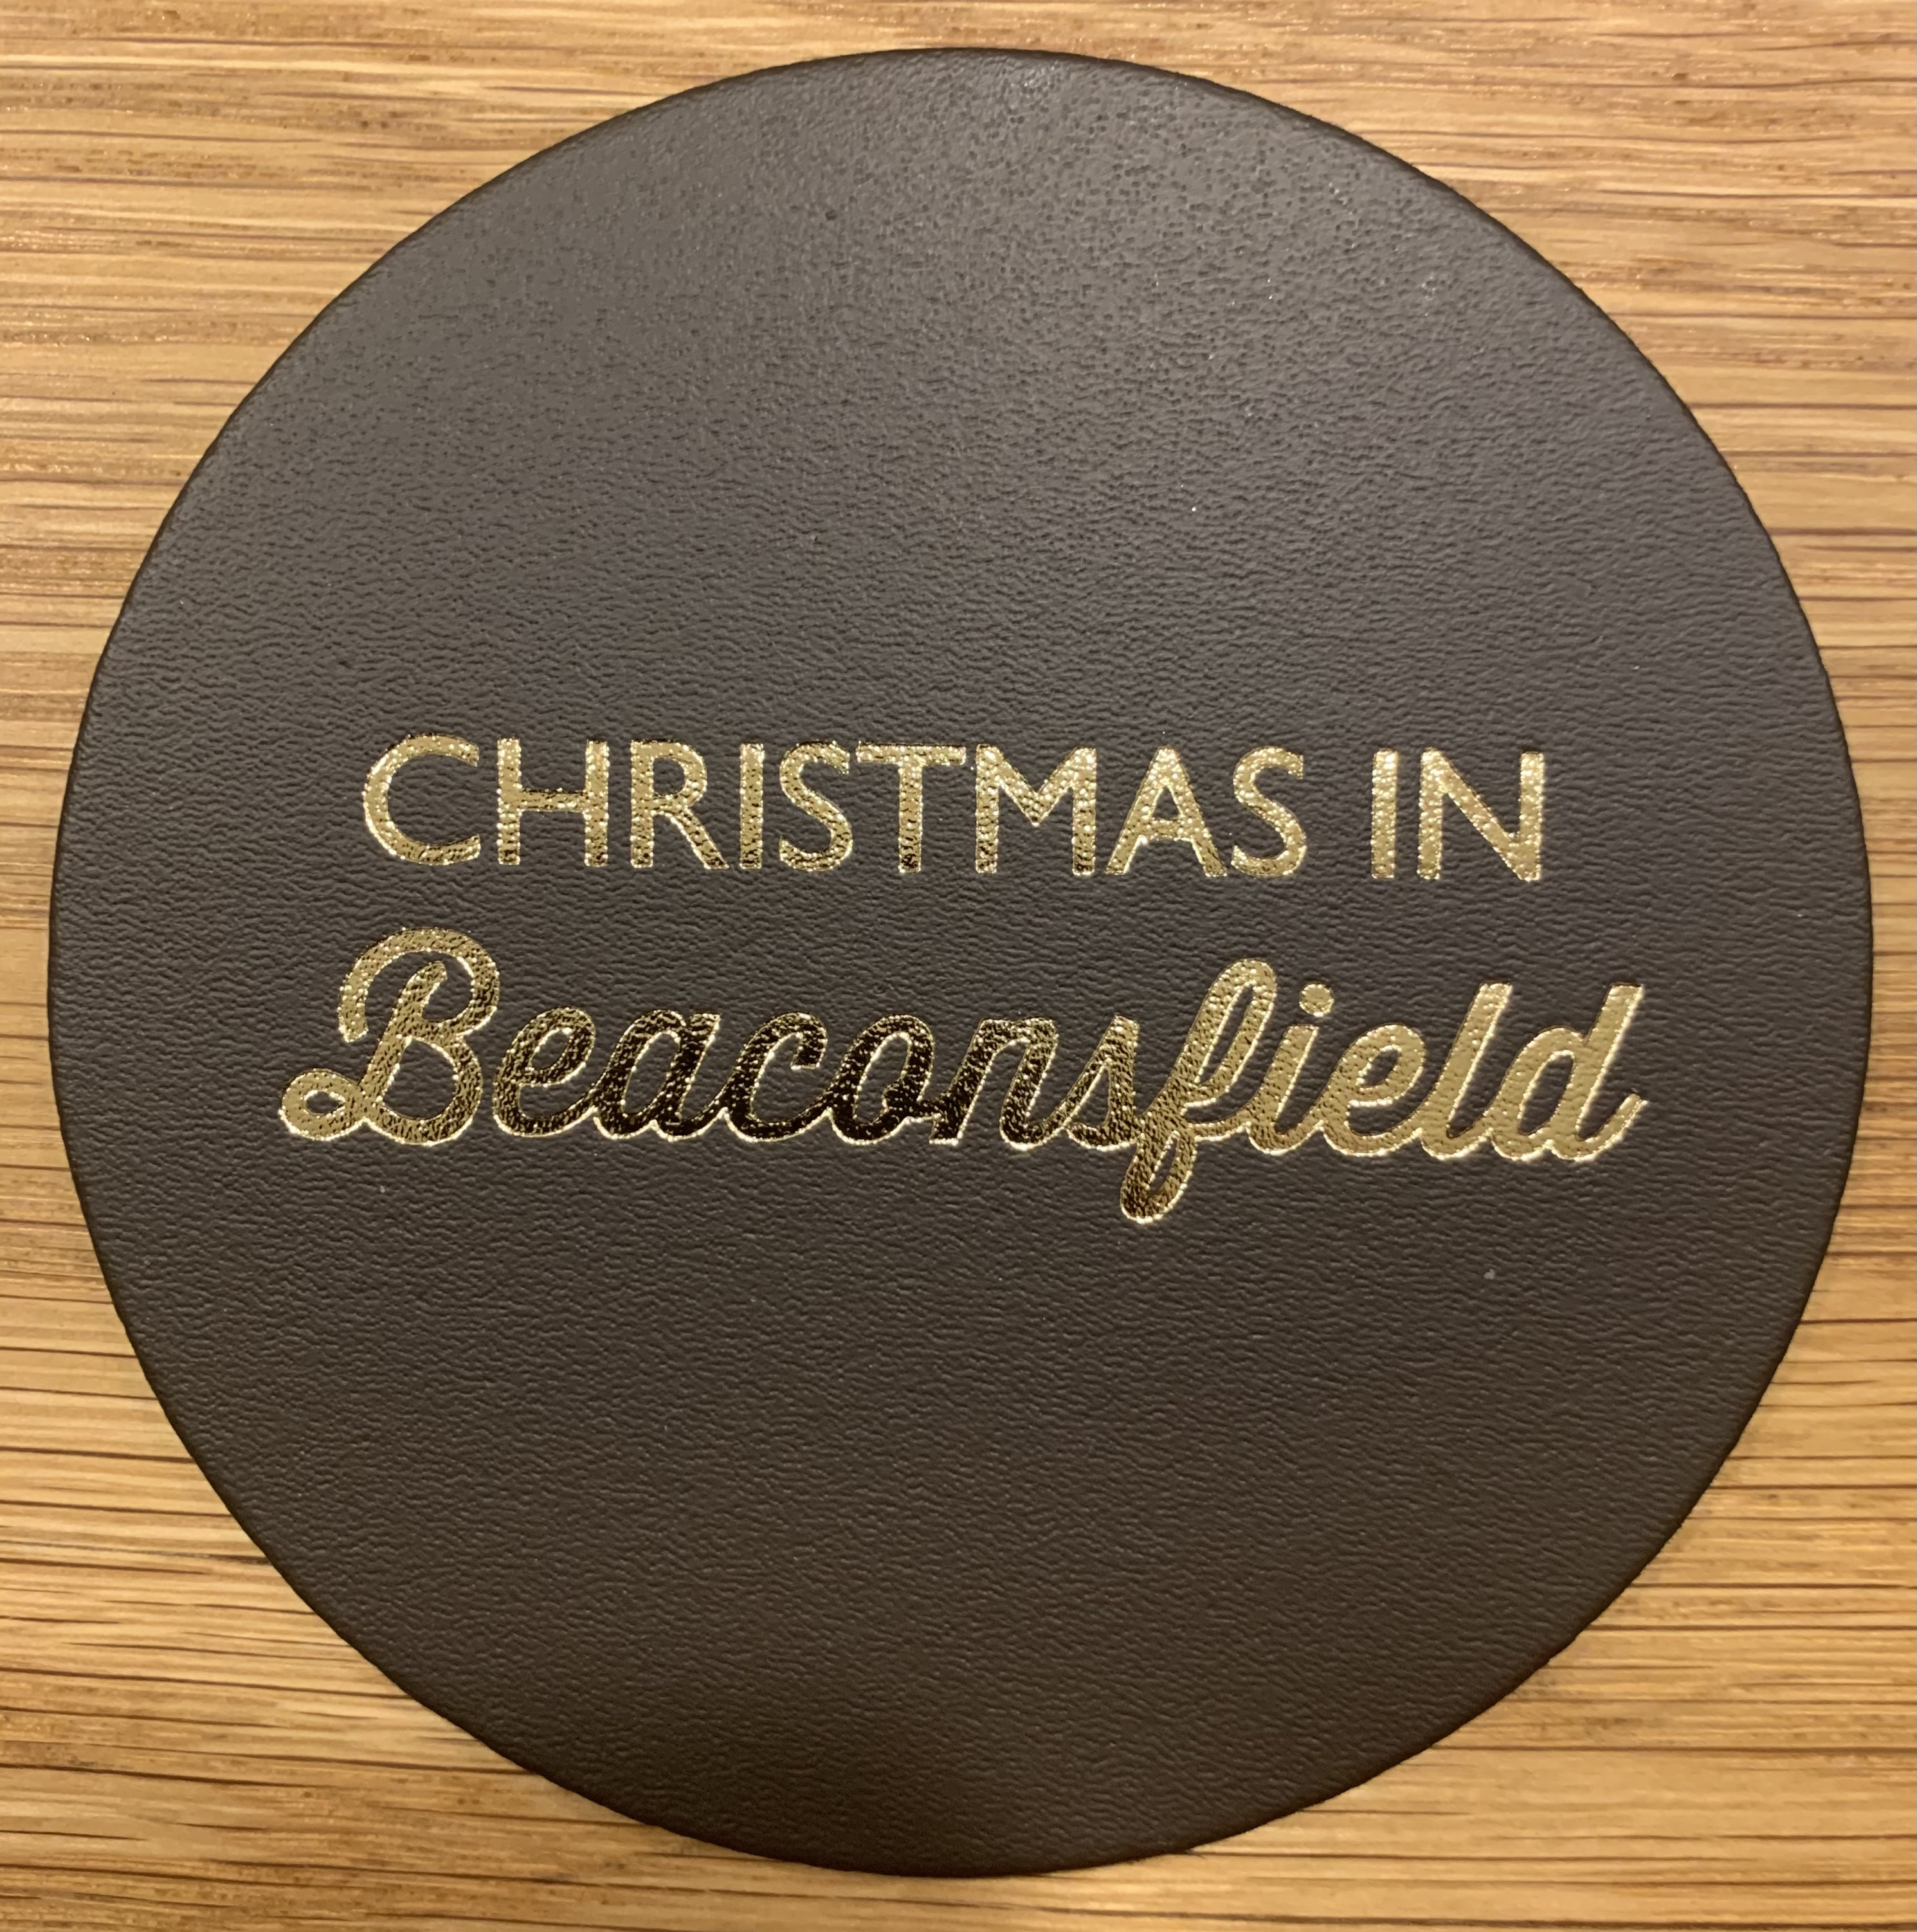 Leather Coaster - Christmas in Beaconsfield Brown